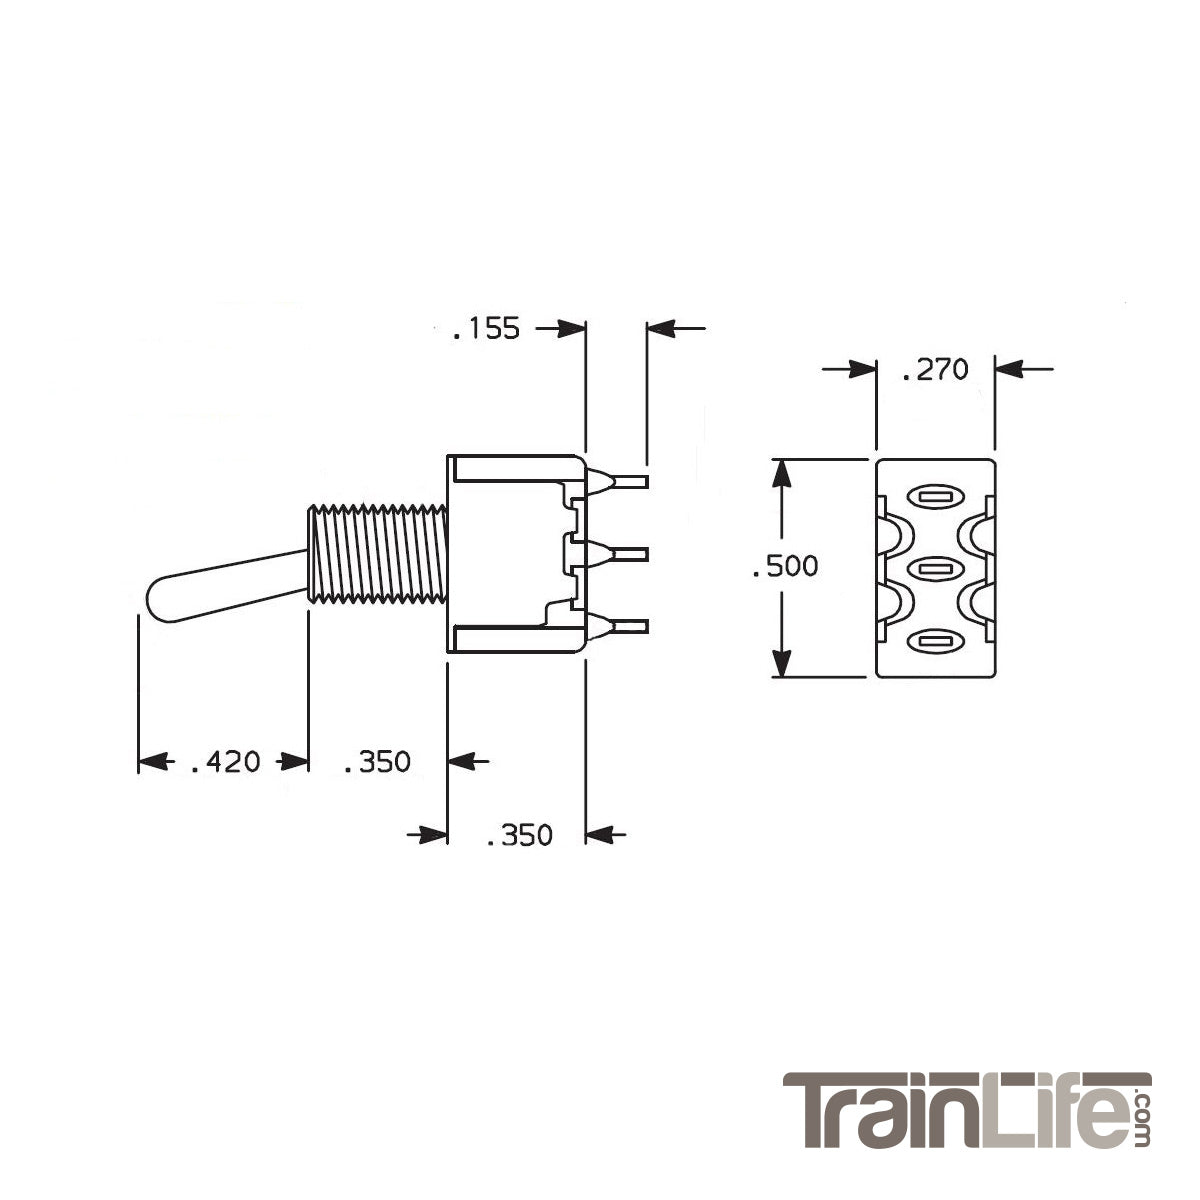 Nce On Toggle Switches 125v Switch Wiring Diagram